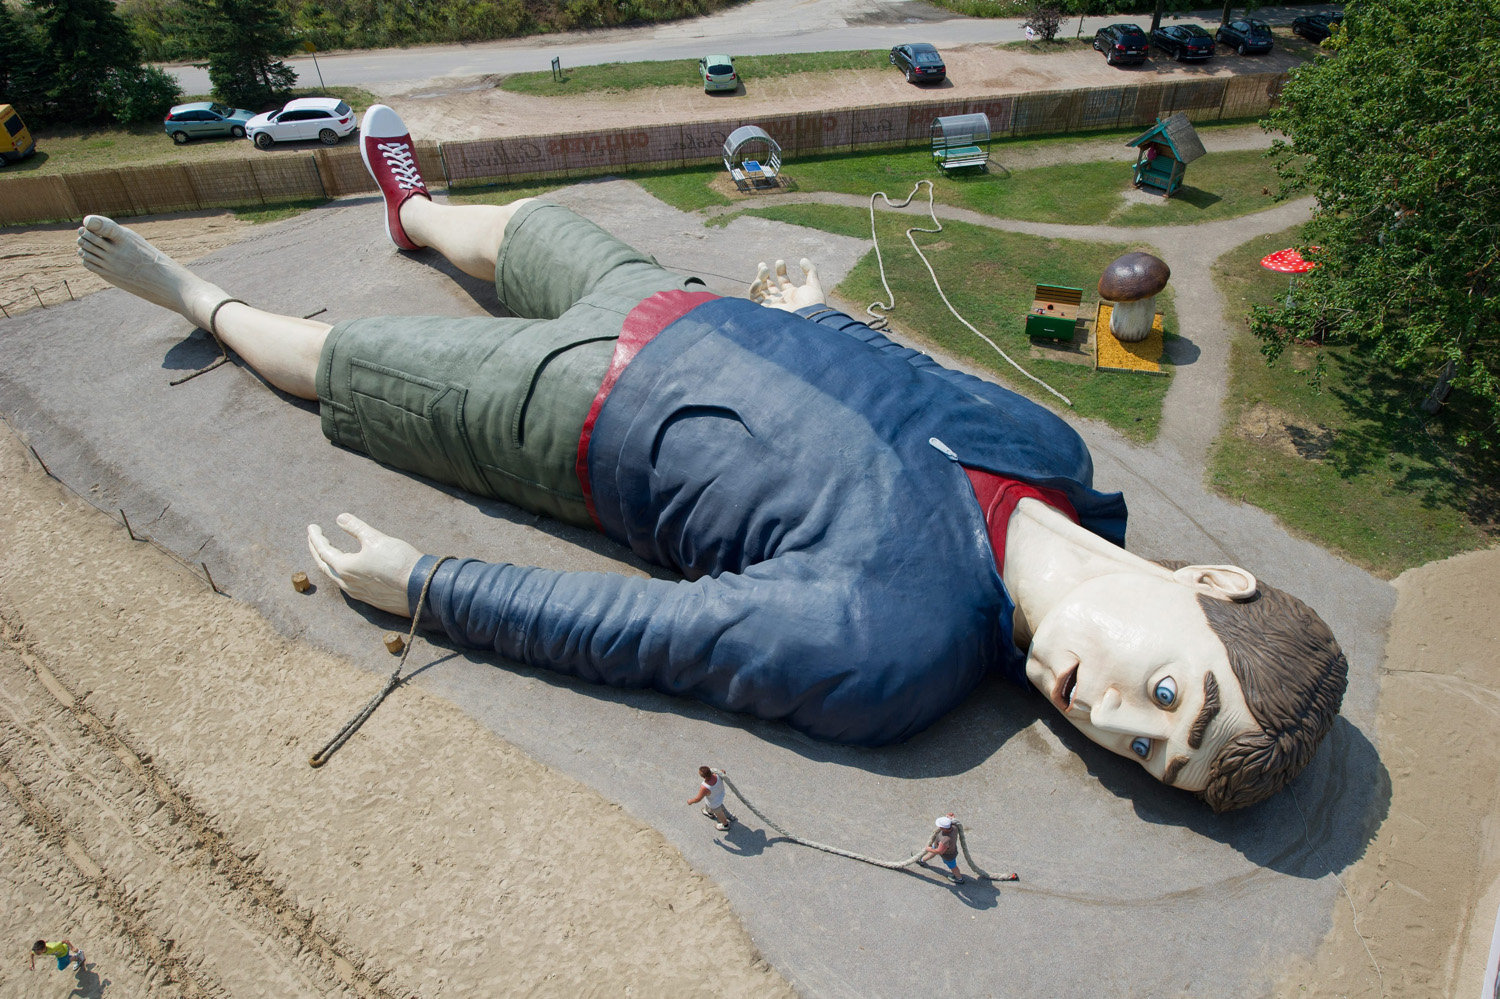 Workers carry a rope next to a figure of Gulliver at the amusement park 'Gulliver's World' in Pudalga on Usedom, Germany, July 8, 2014.